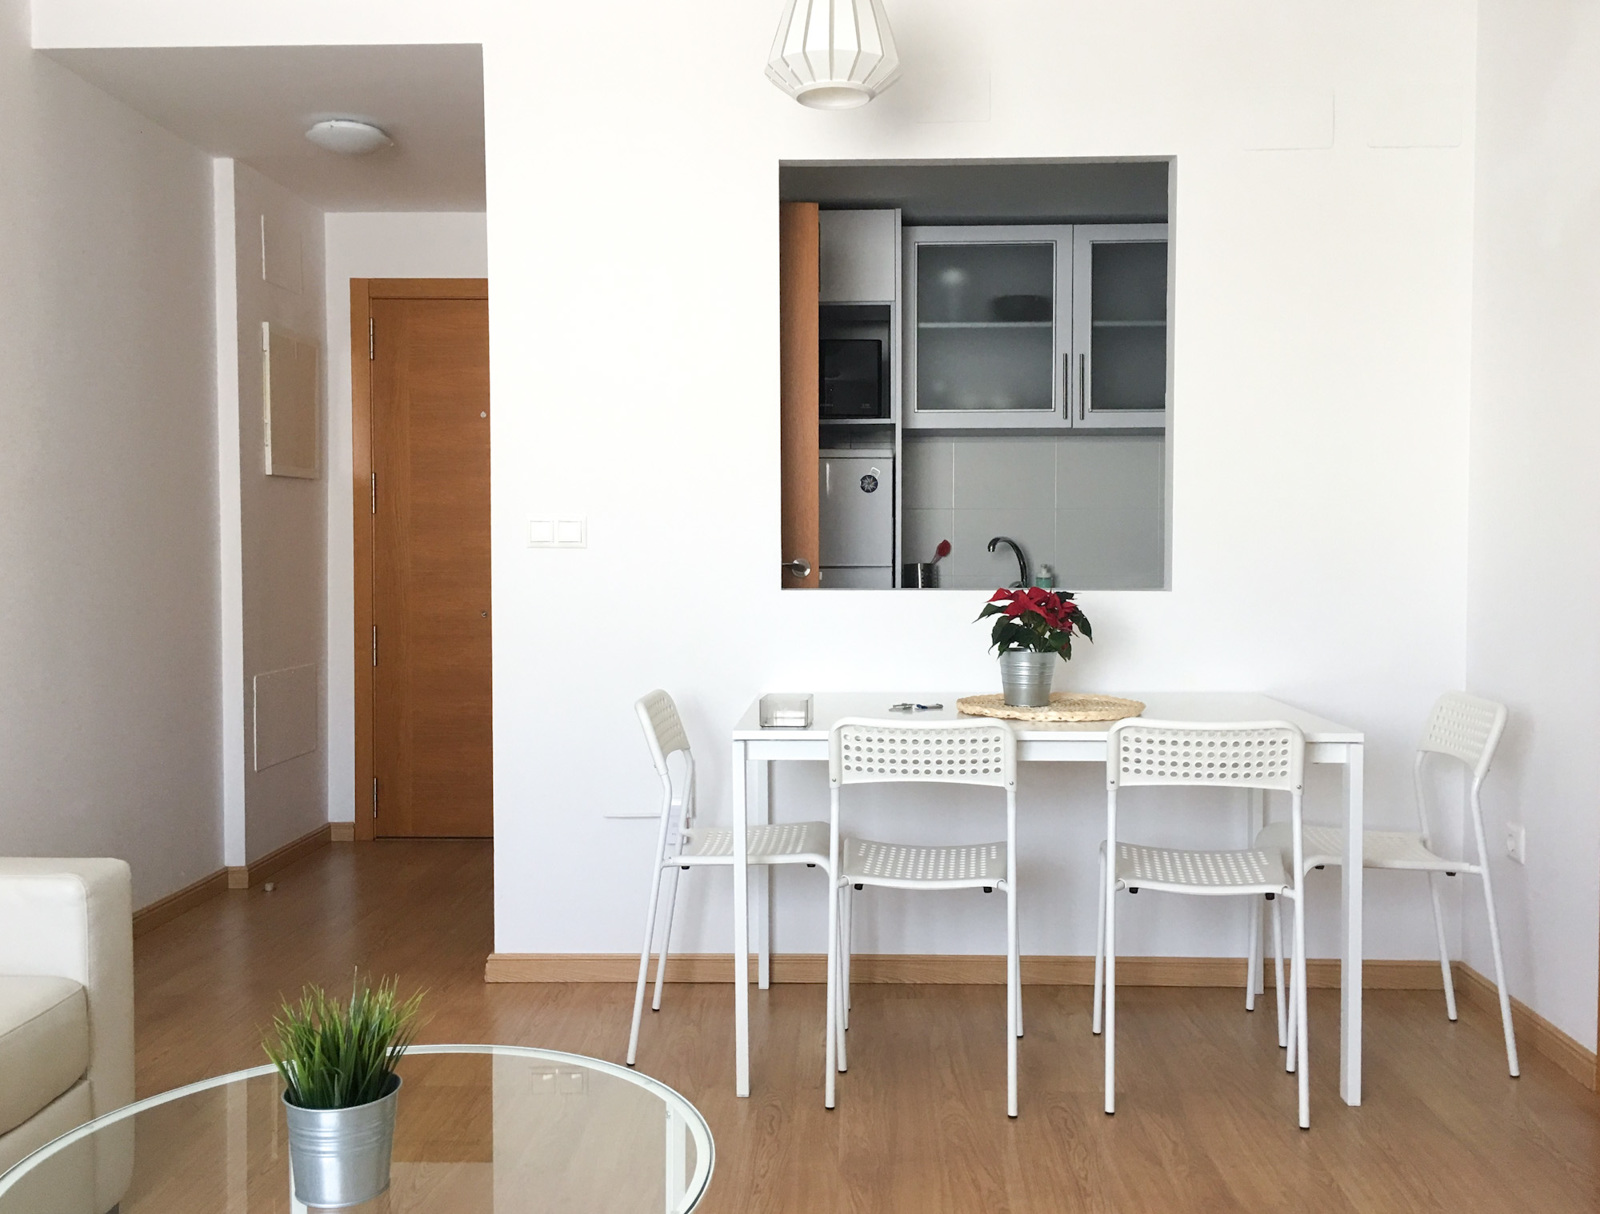 Holiday rental apartaments in Málaga. Apartments in the city center and El Palo beach. The best location in Málaga. - El Palo 2